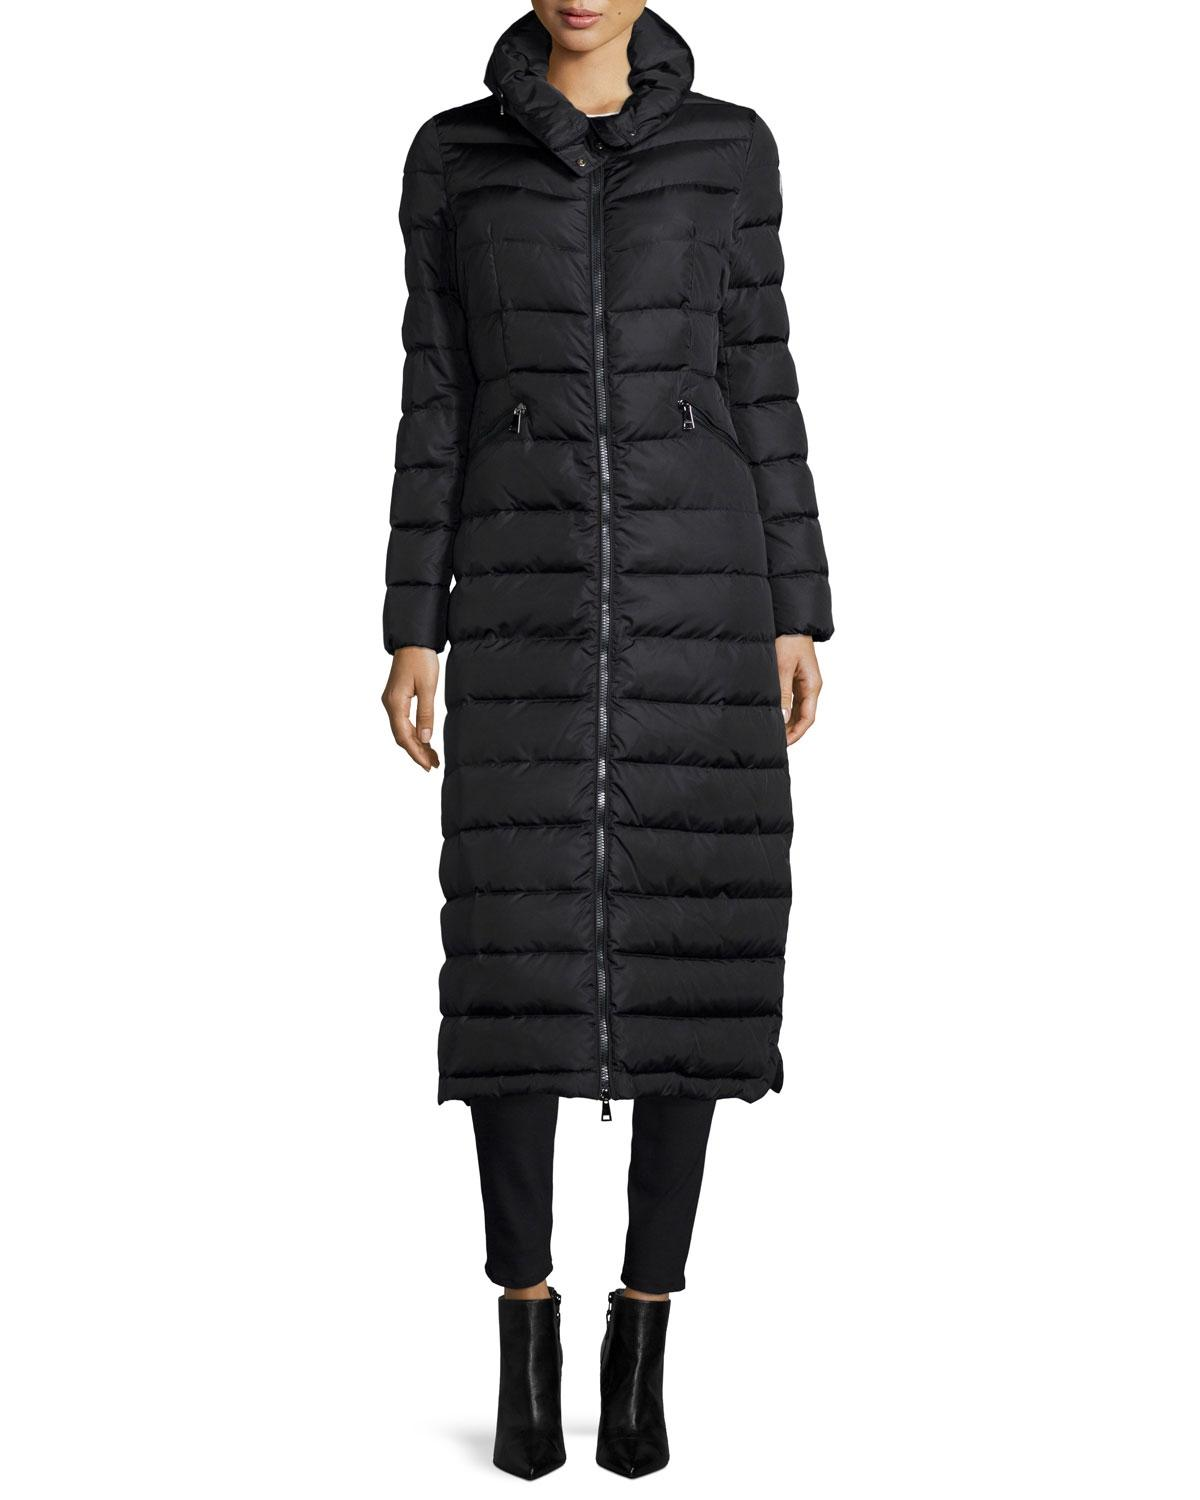 Moncler Fur Jacket Coat